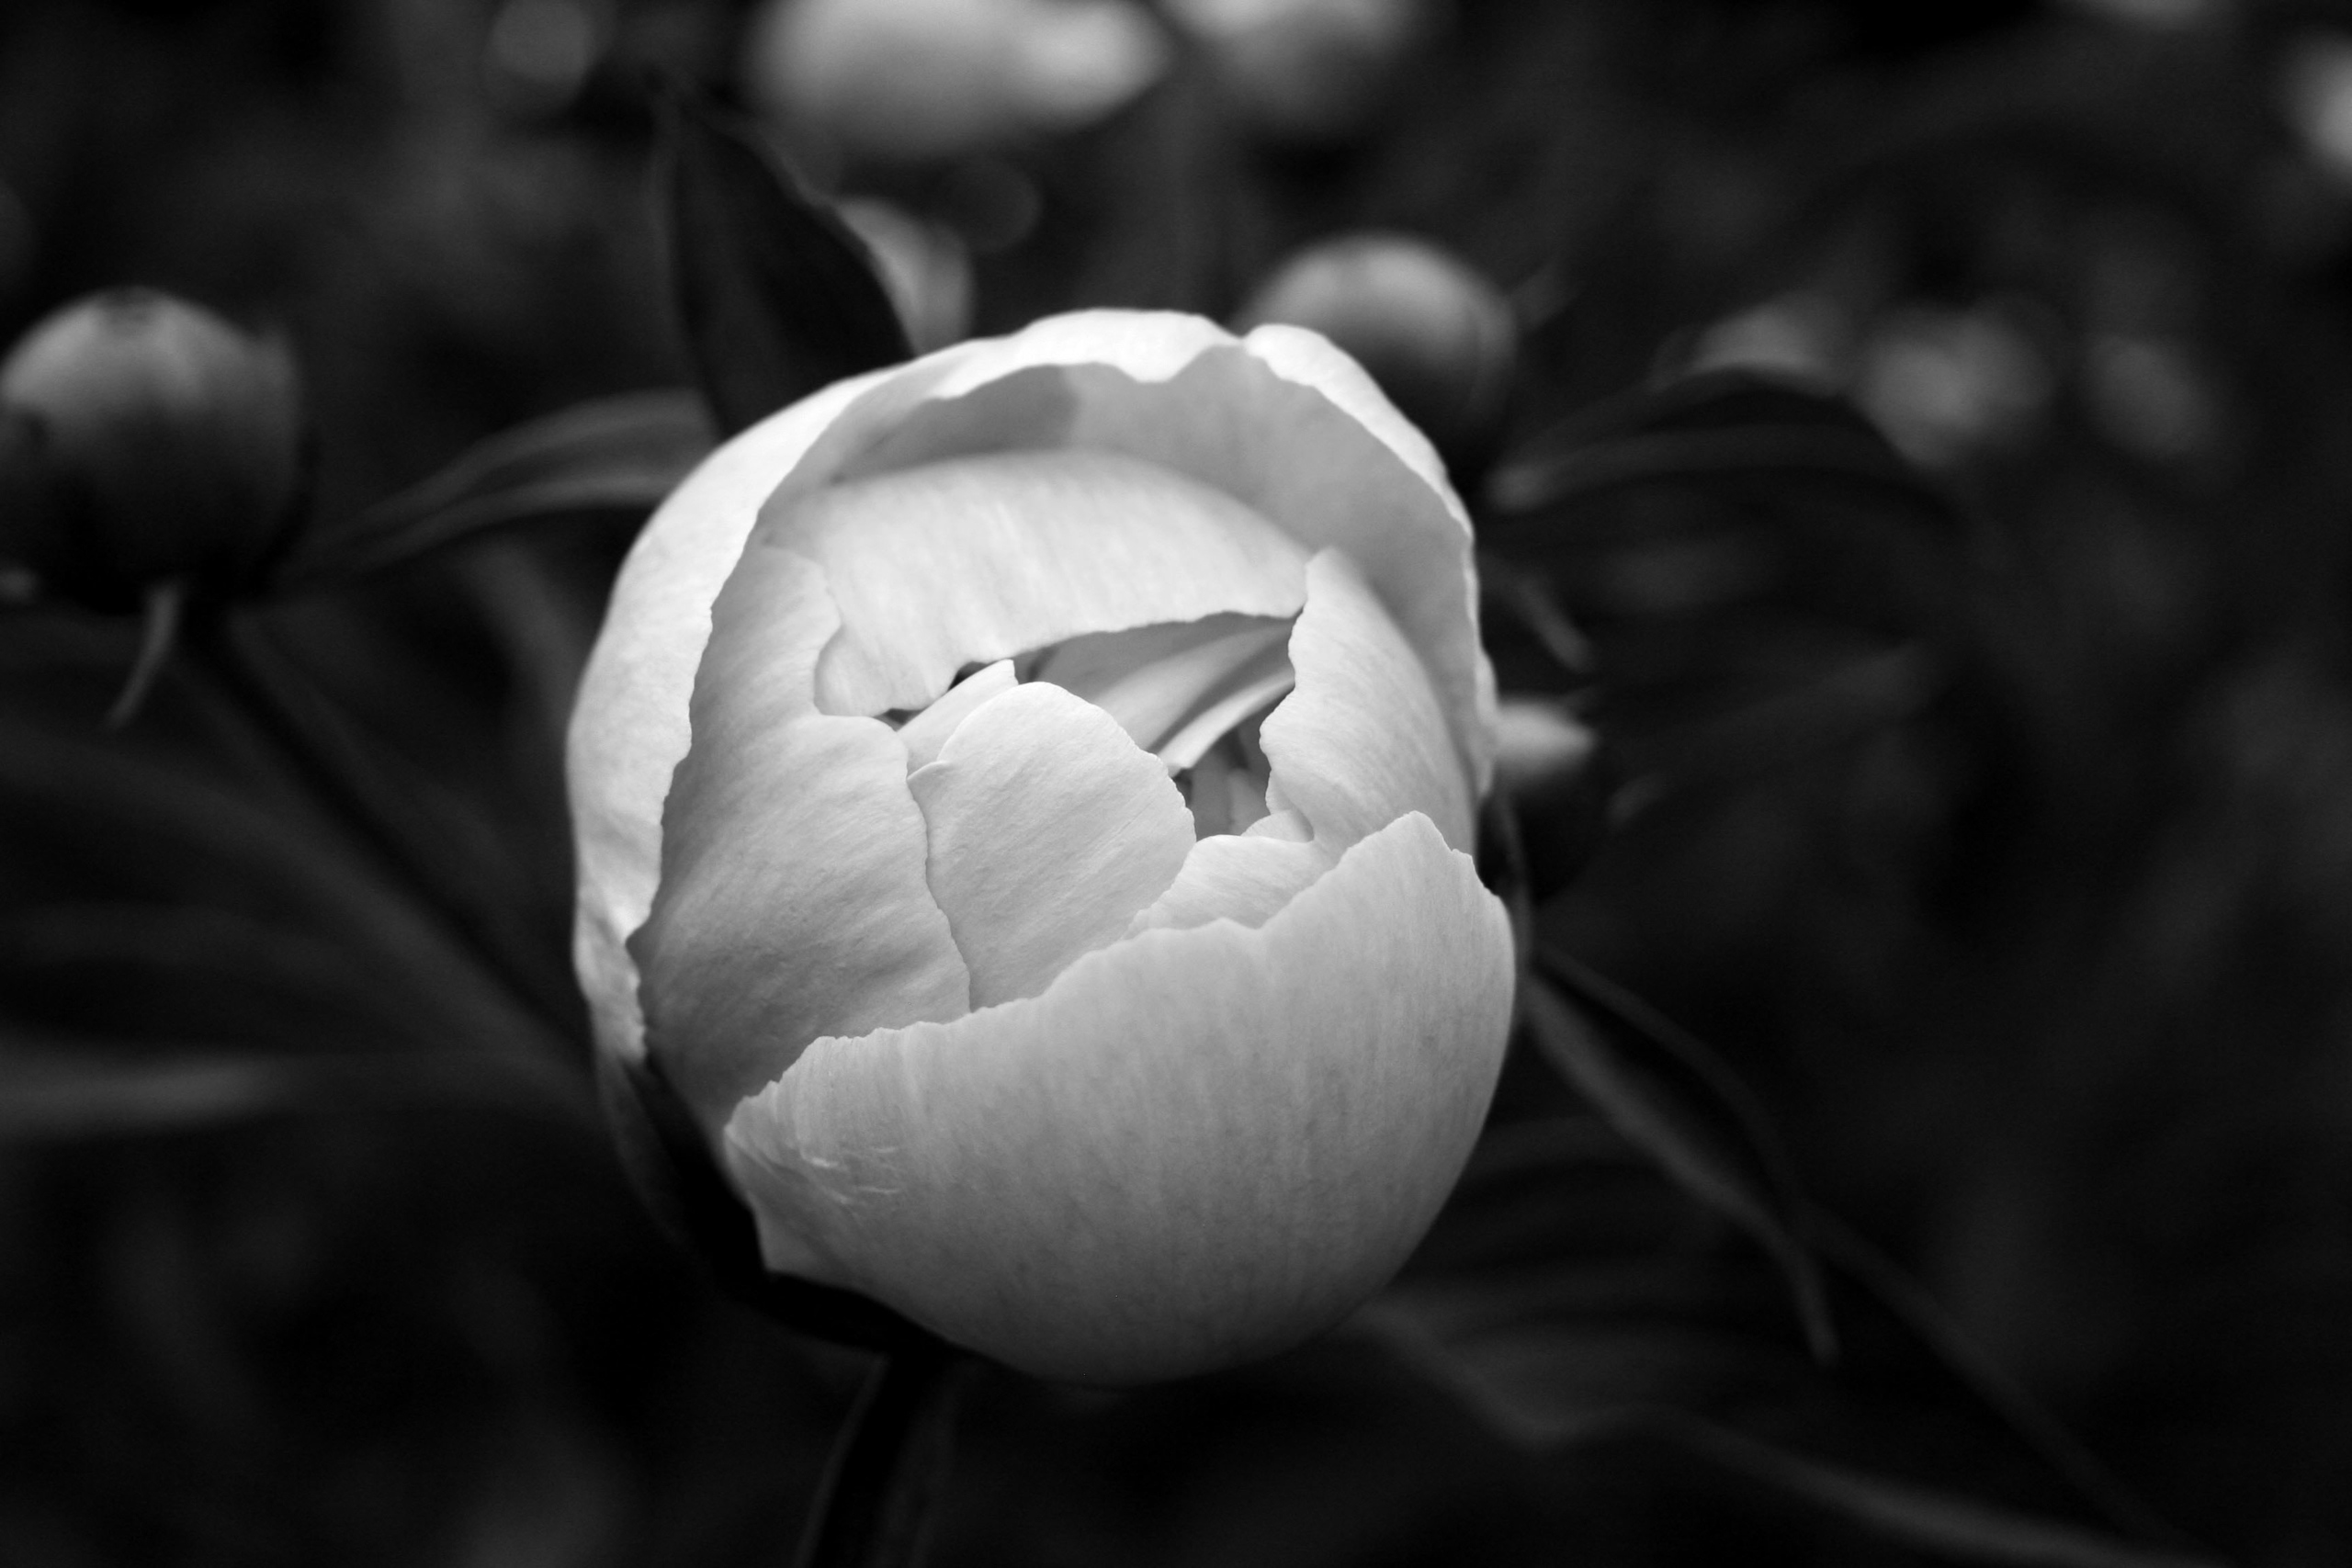 La botanique – Paeonia 02 - photography - clotildeh | ello